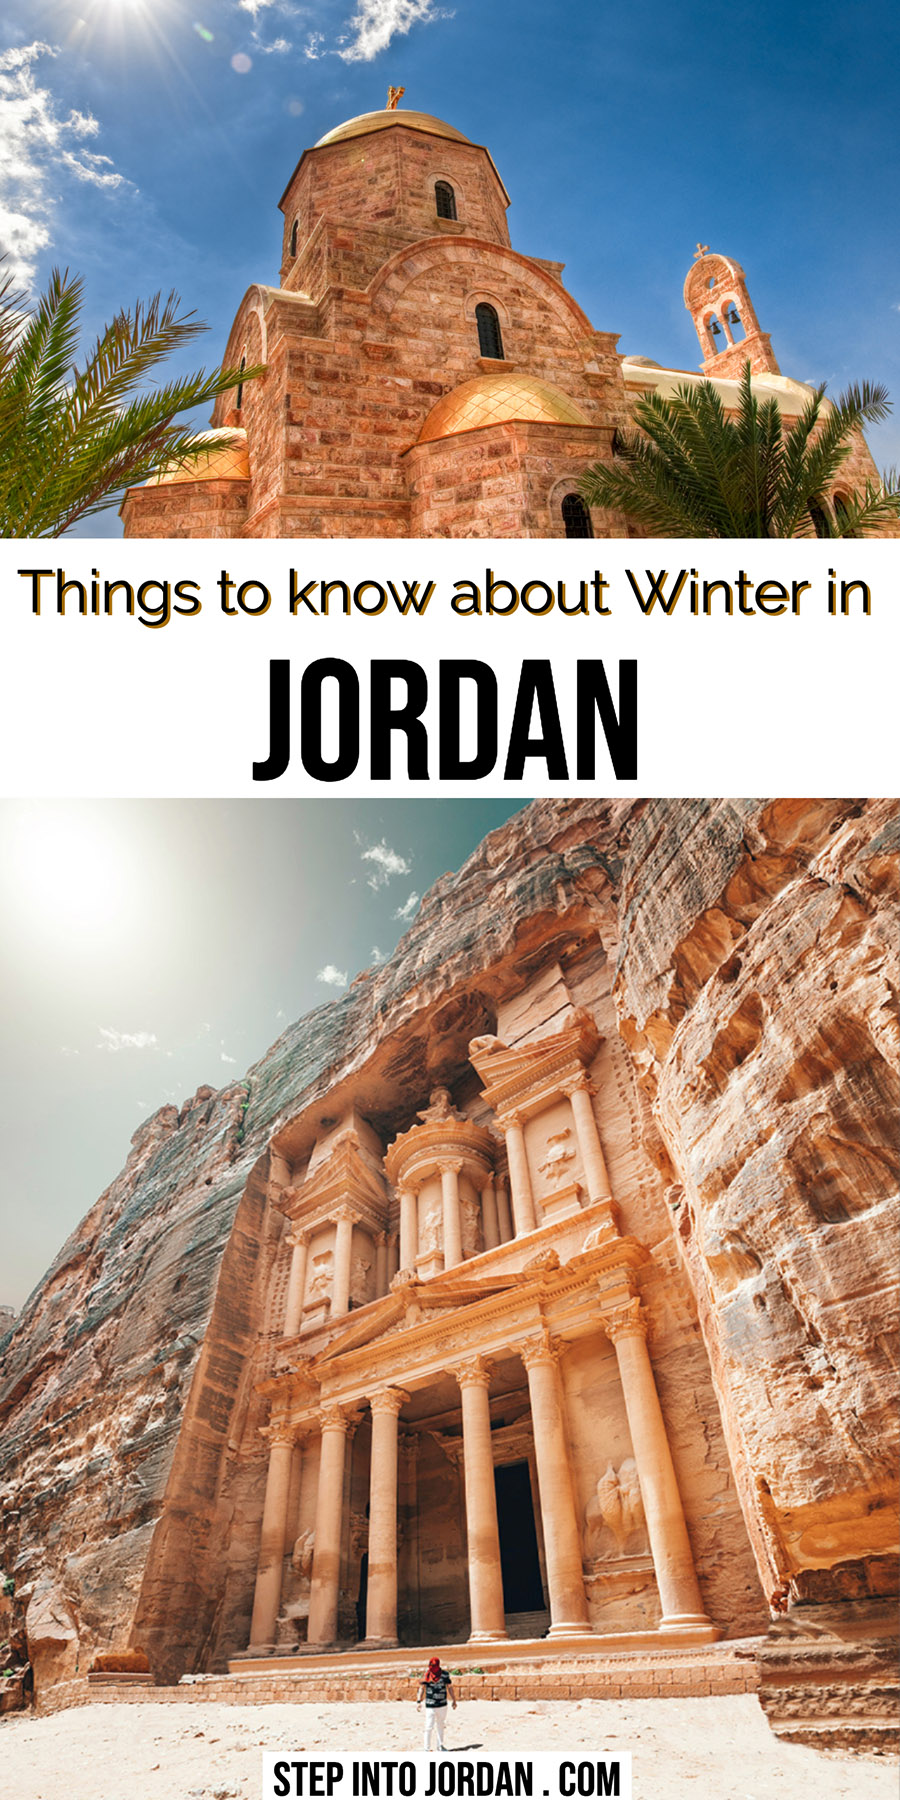 Winter in Jordan